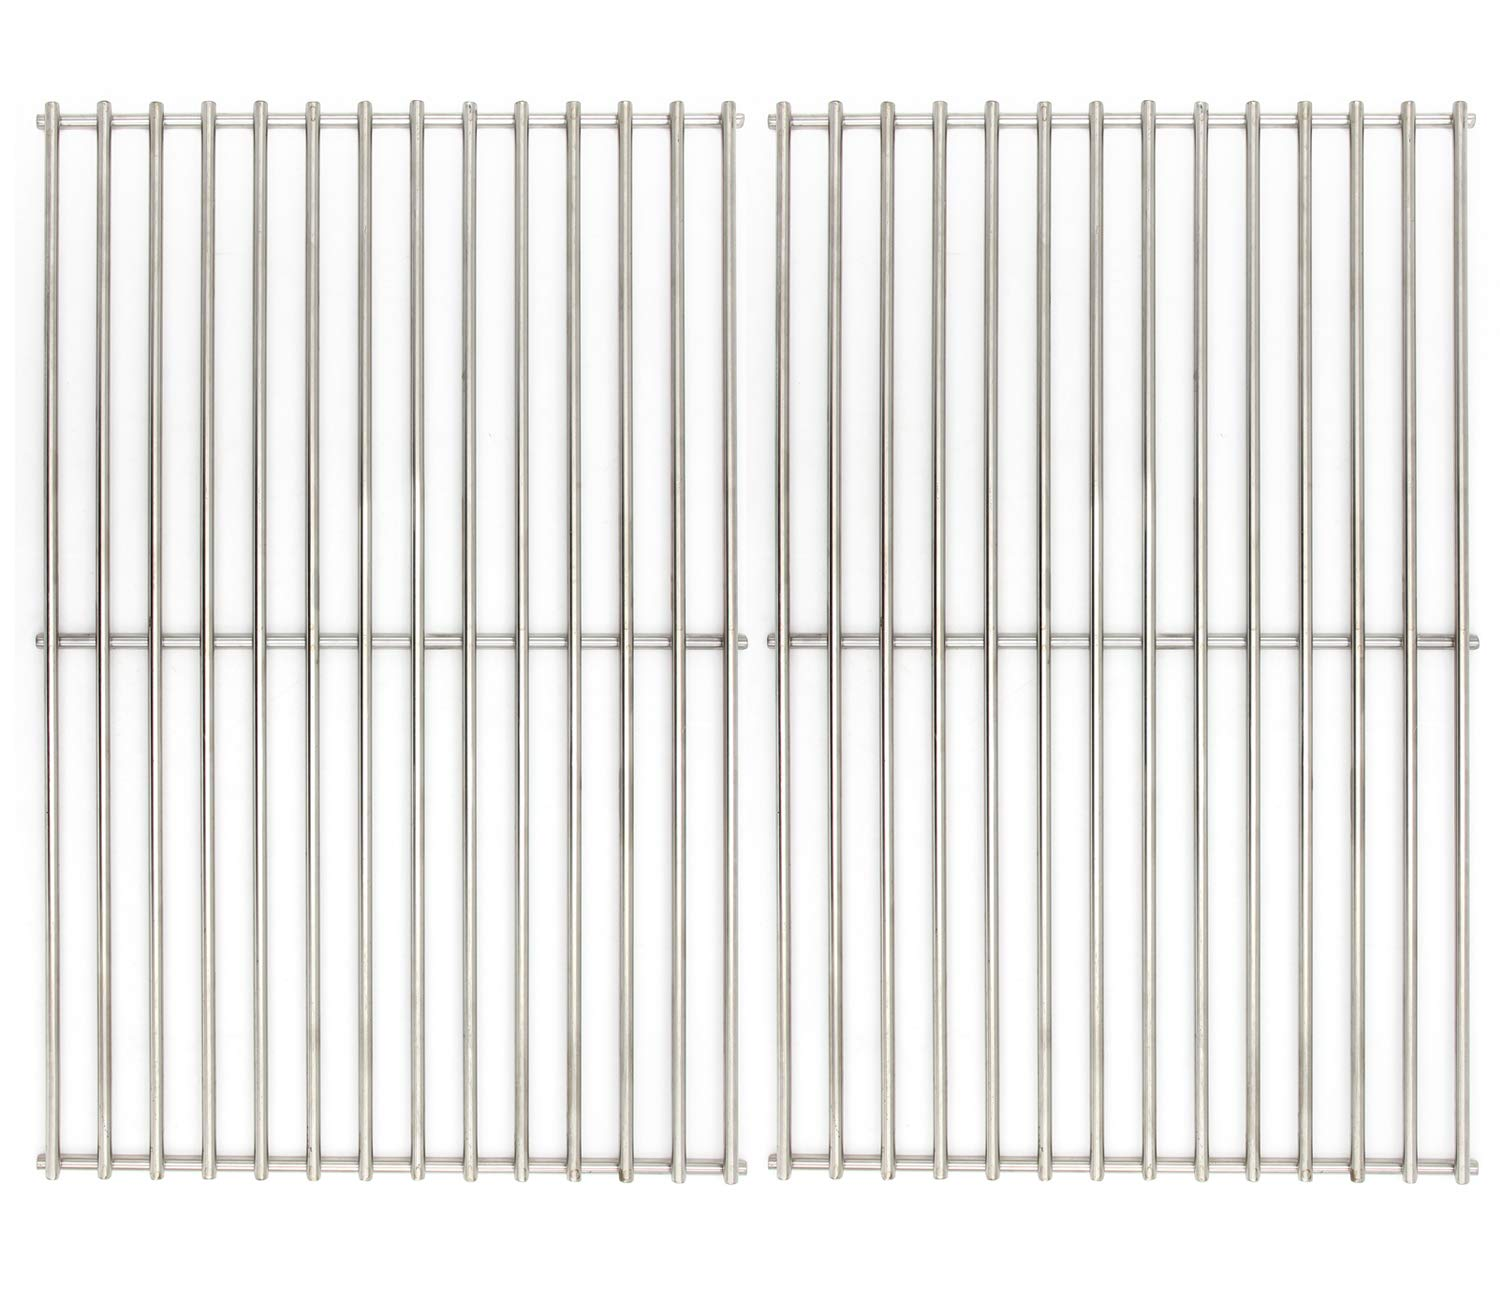 Hongso Grill Grates, Durable 304 Stainless Steel Solid Rod, 19 1/4 inch Cooking Grid Grates Replacement for Turbo, Charmglow Gas Grill (2 Pieces, SCS612) by Hongso